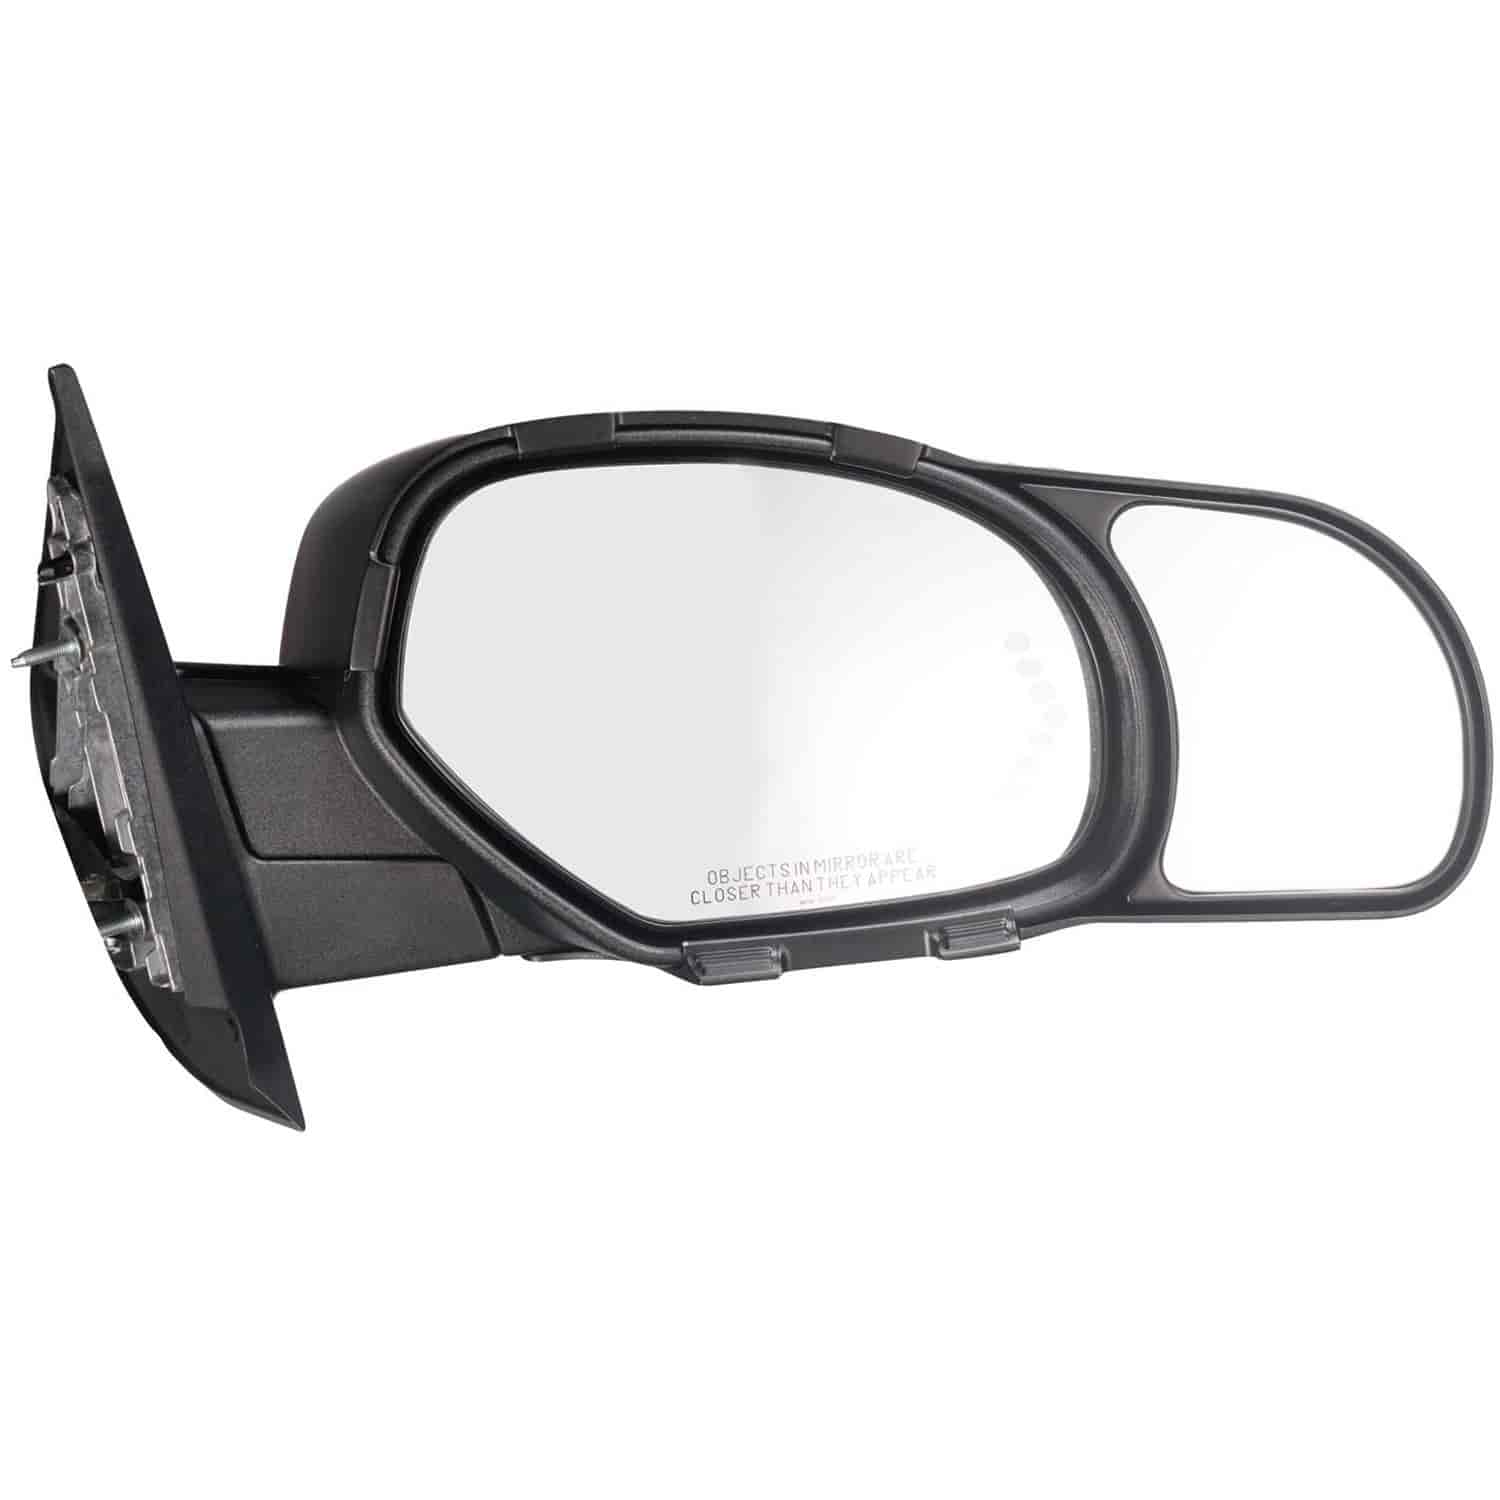 K-Source 80900 Snap-On Towing Mirrors Fits 2007 to 2013 Chevy Silverado /& GMC Si